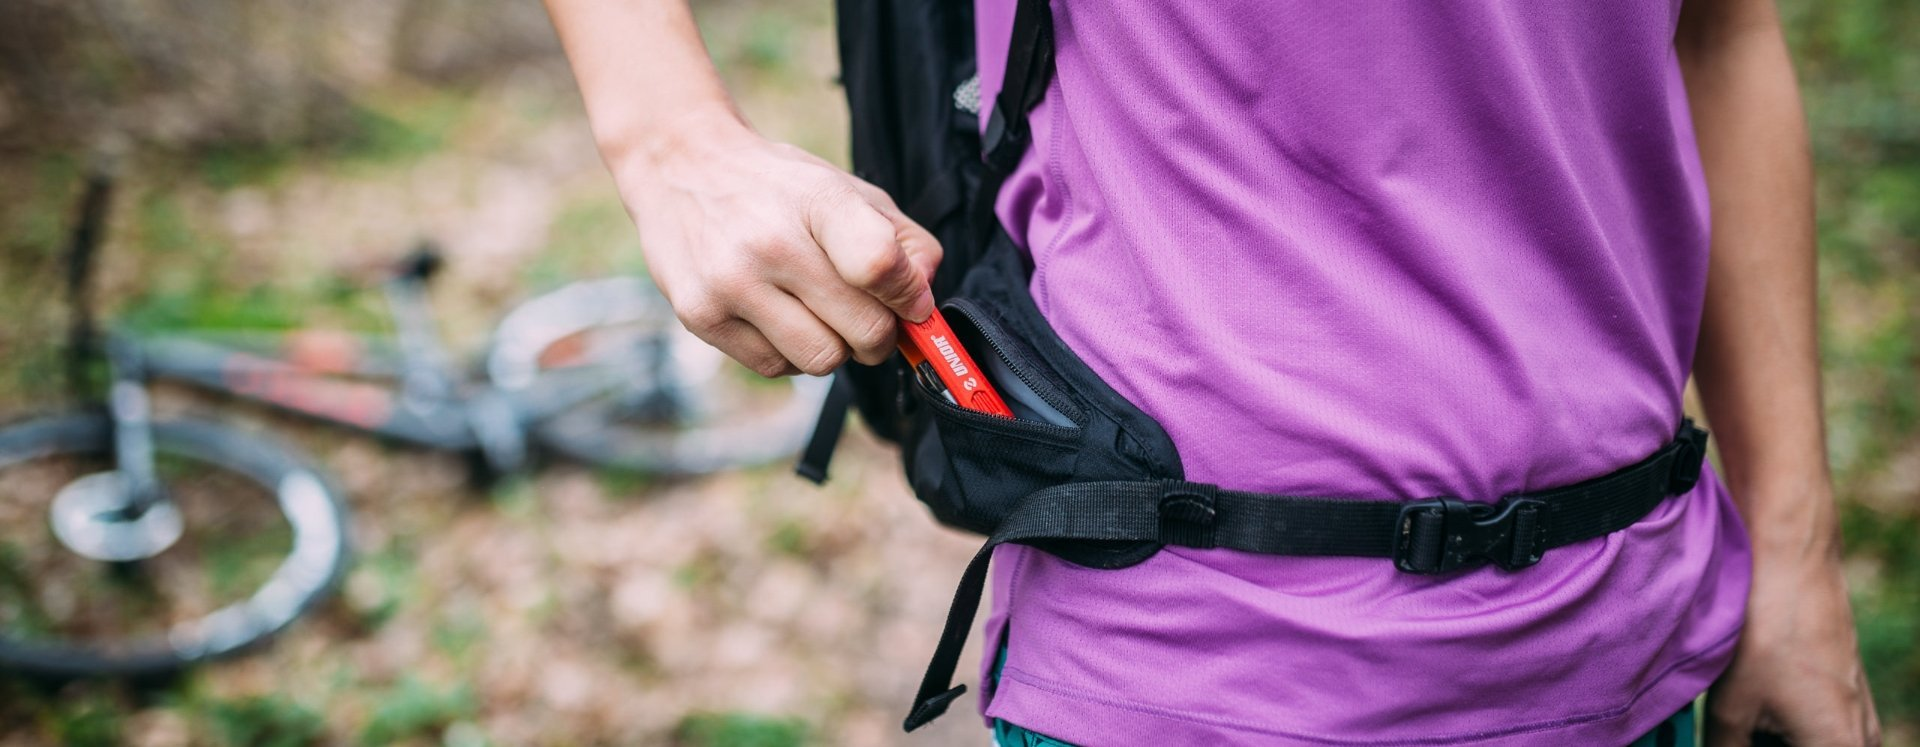 A woman pulls a Unior multitool from her backpack pocket